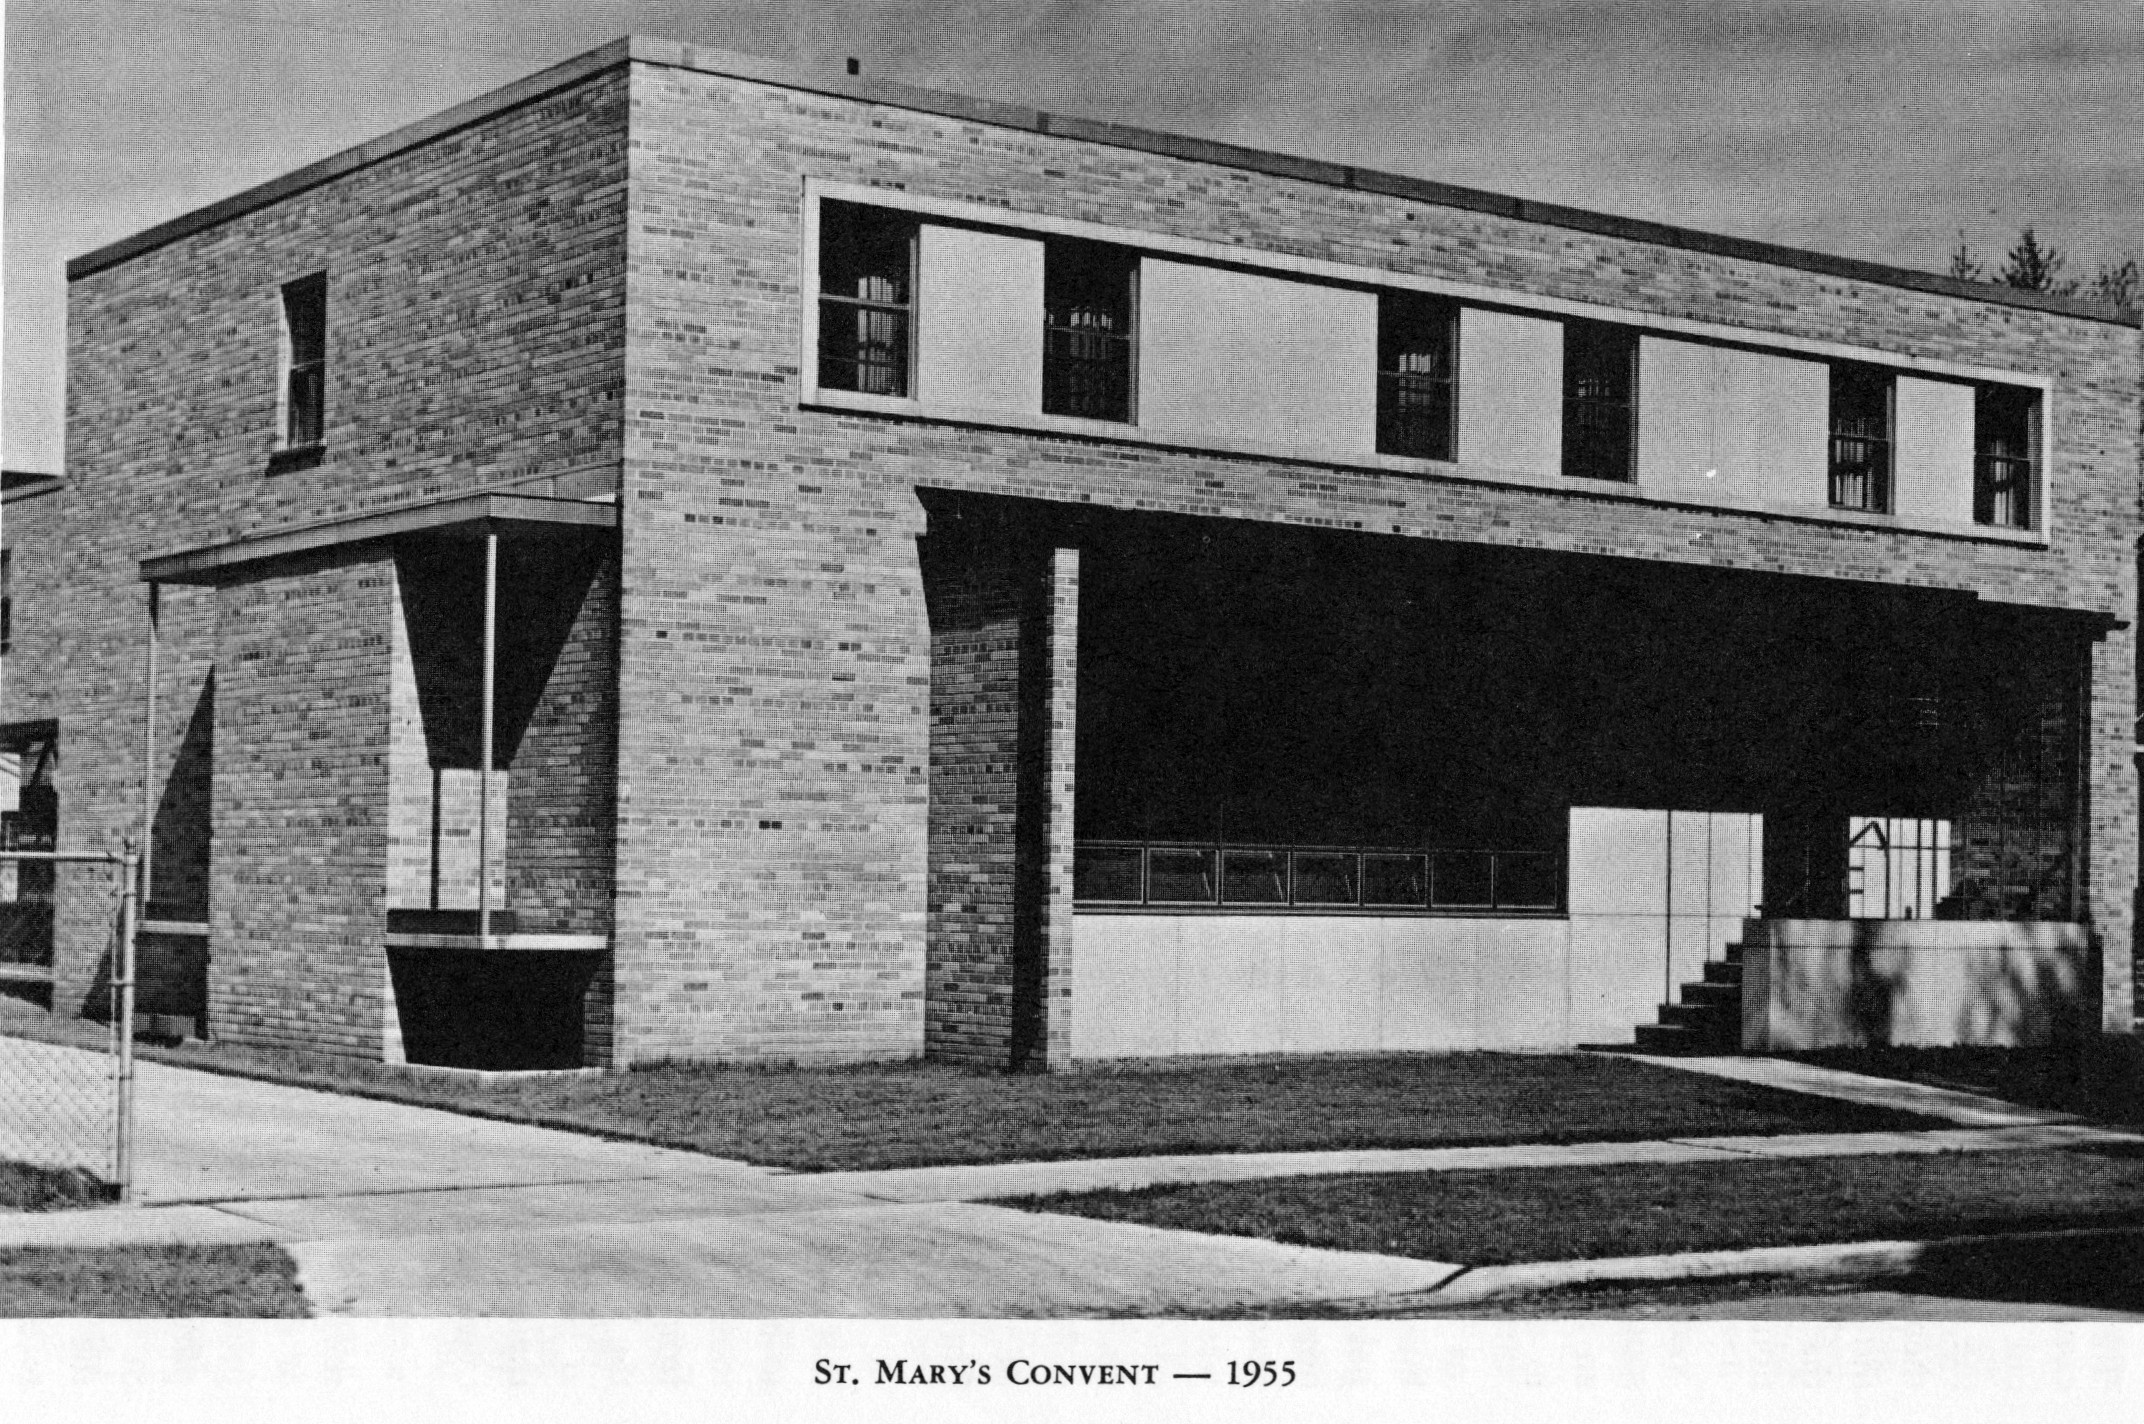 St. Mary's Convent, 1955.